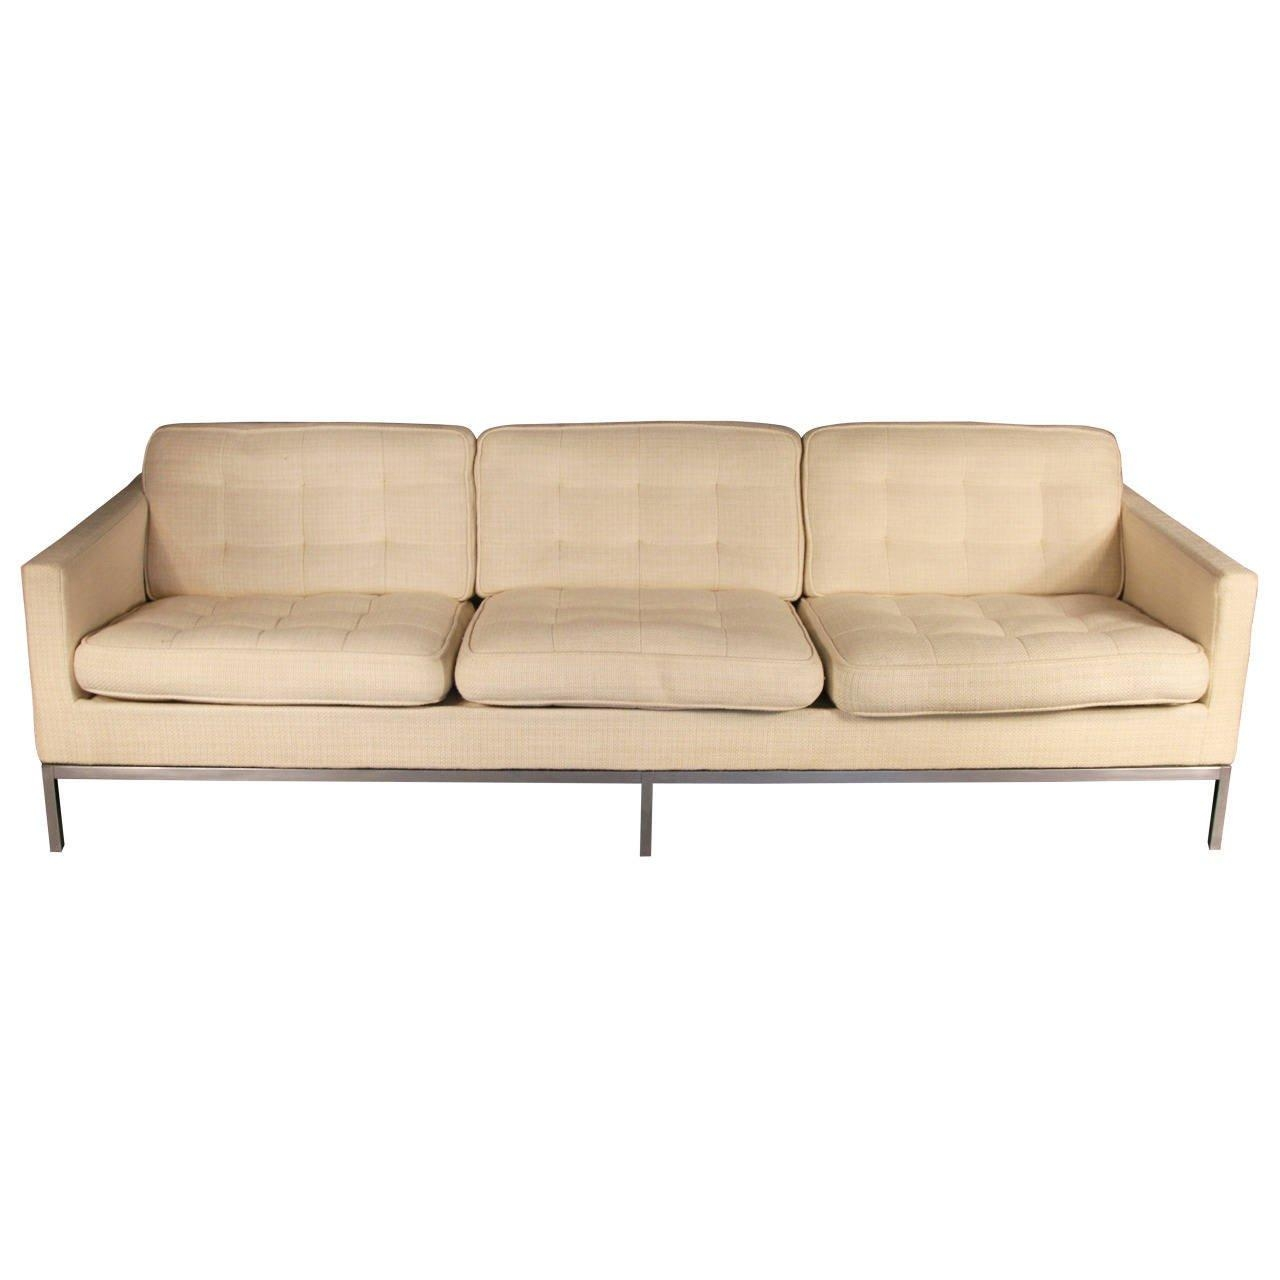 Three Seater Sofaflorence Knoll At 1Stdibs Within Florence Knoll Wood Legs Sofas (Image 20 of 20)